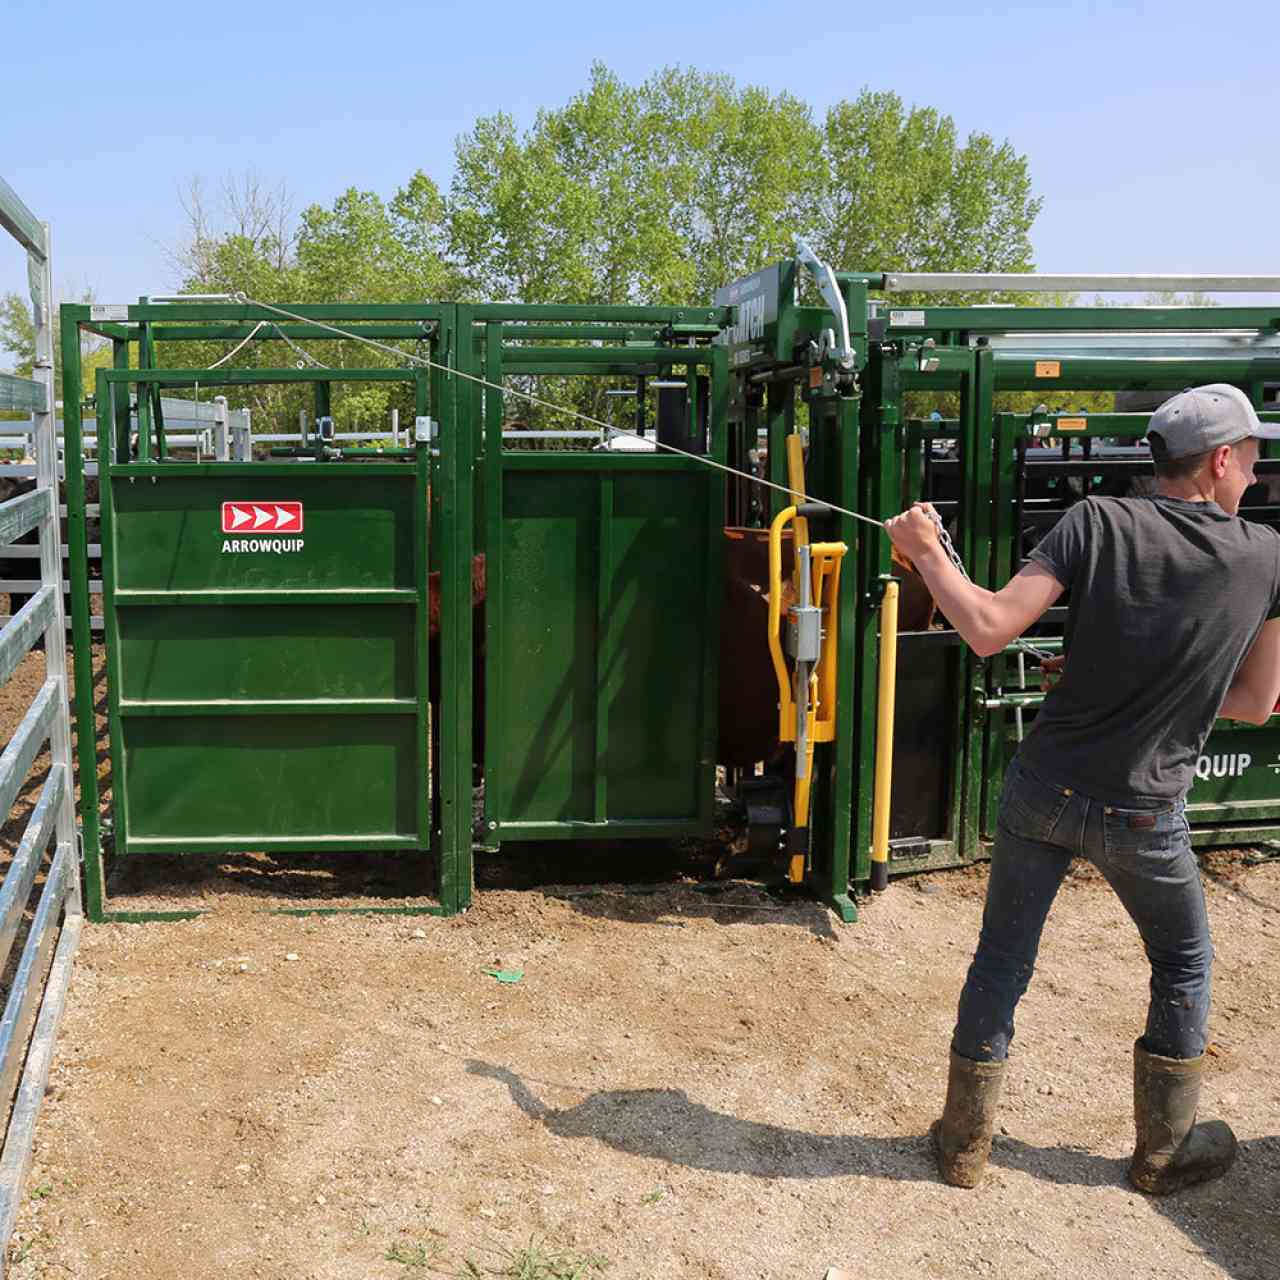 Young rancher using post-chute cattle drafting gates